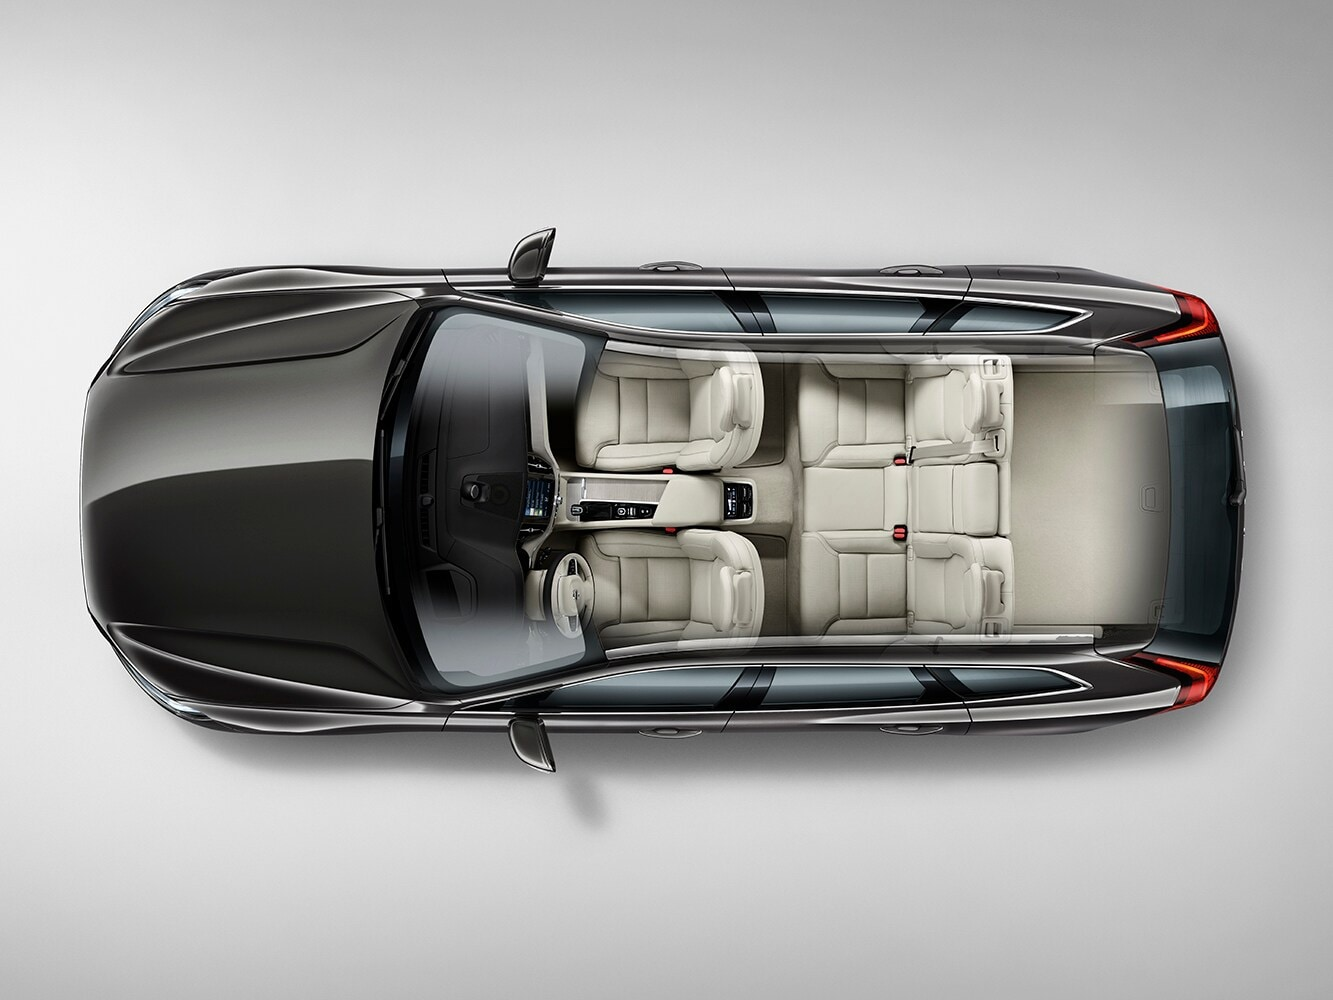 Top down cutaway view of the Volvo XC60 showing the interior seat layout from above